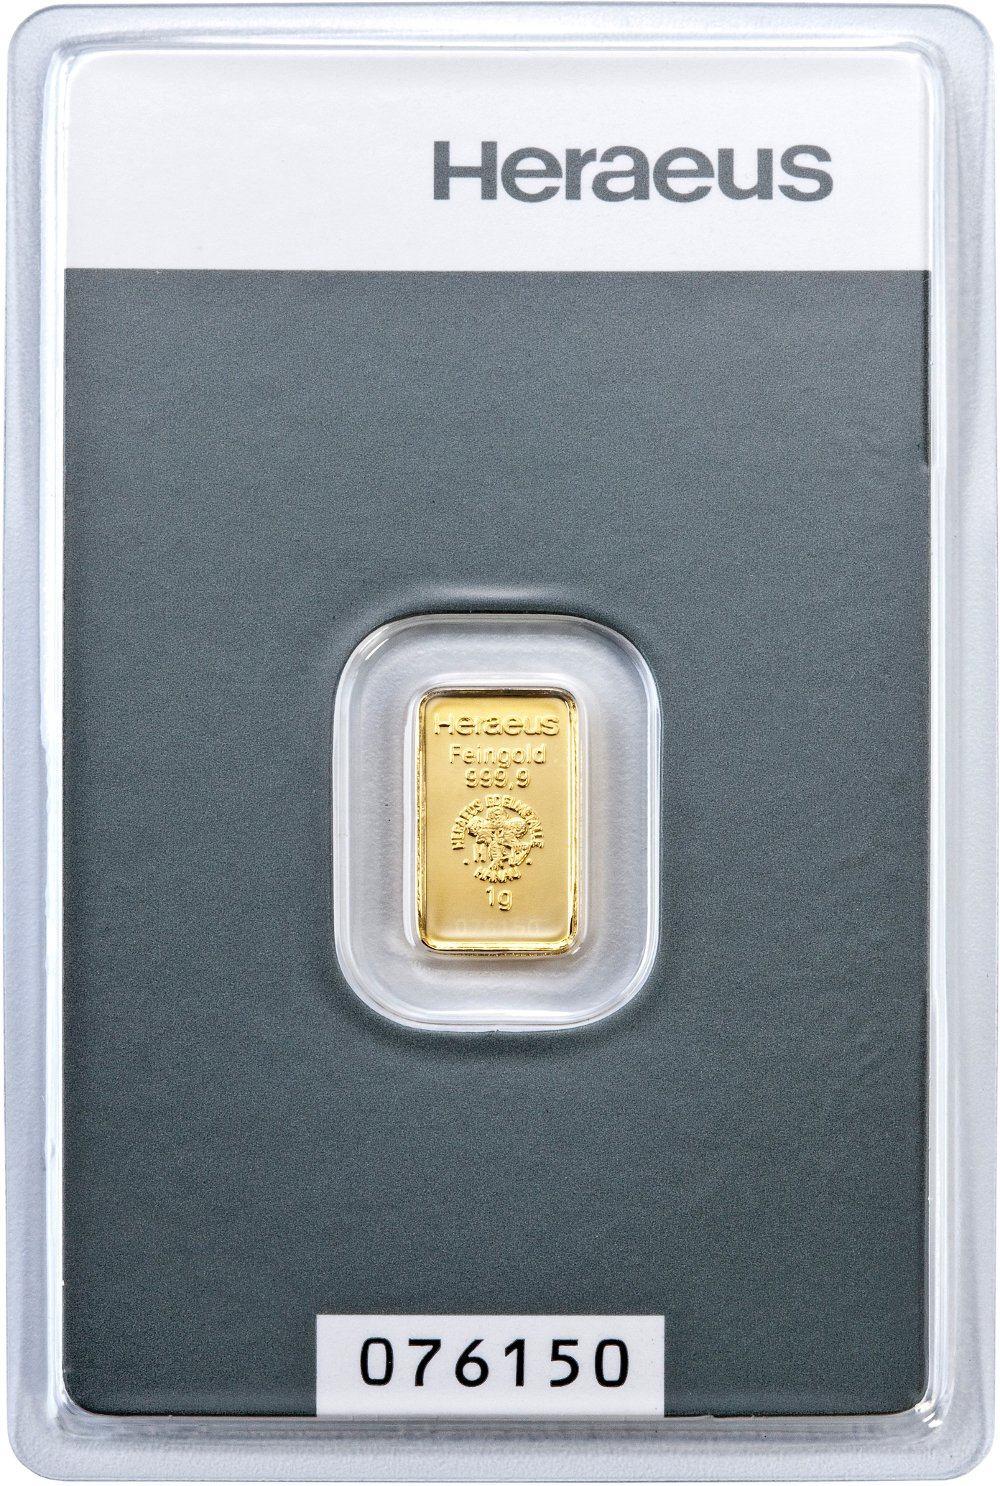 1g Heraeus Gold Bars Bullionbypost From 58